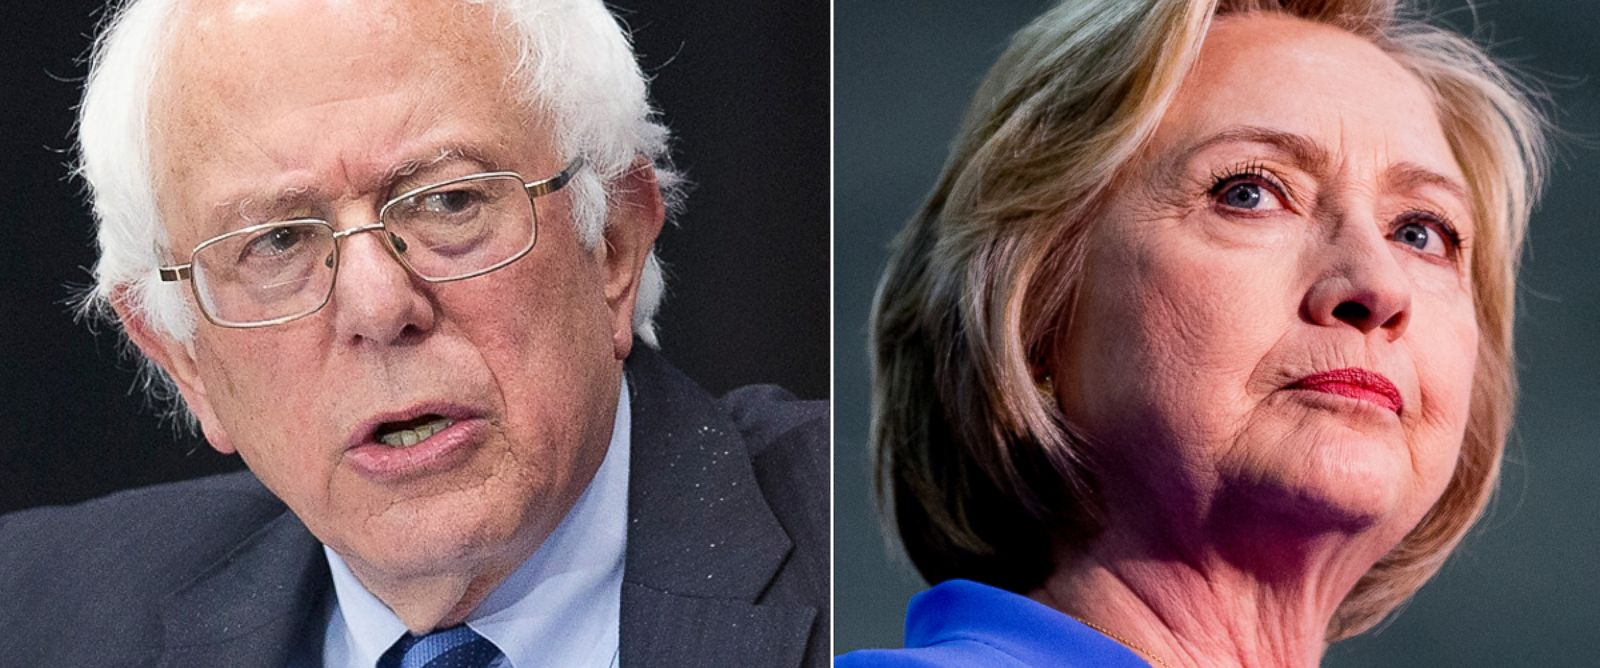 Bernie Sanders Blasts Hillary Clinton's Refusal to Debate as 'Insulting' to Voters